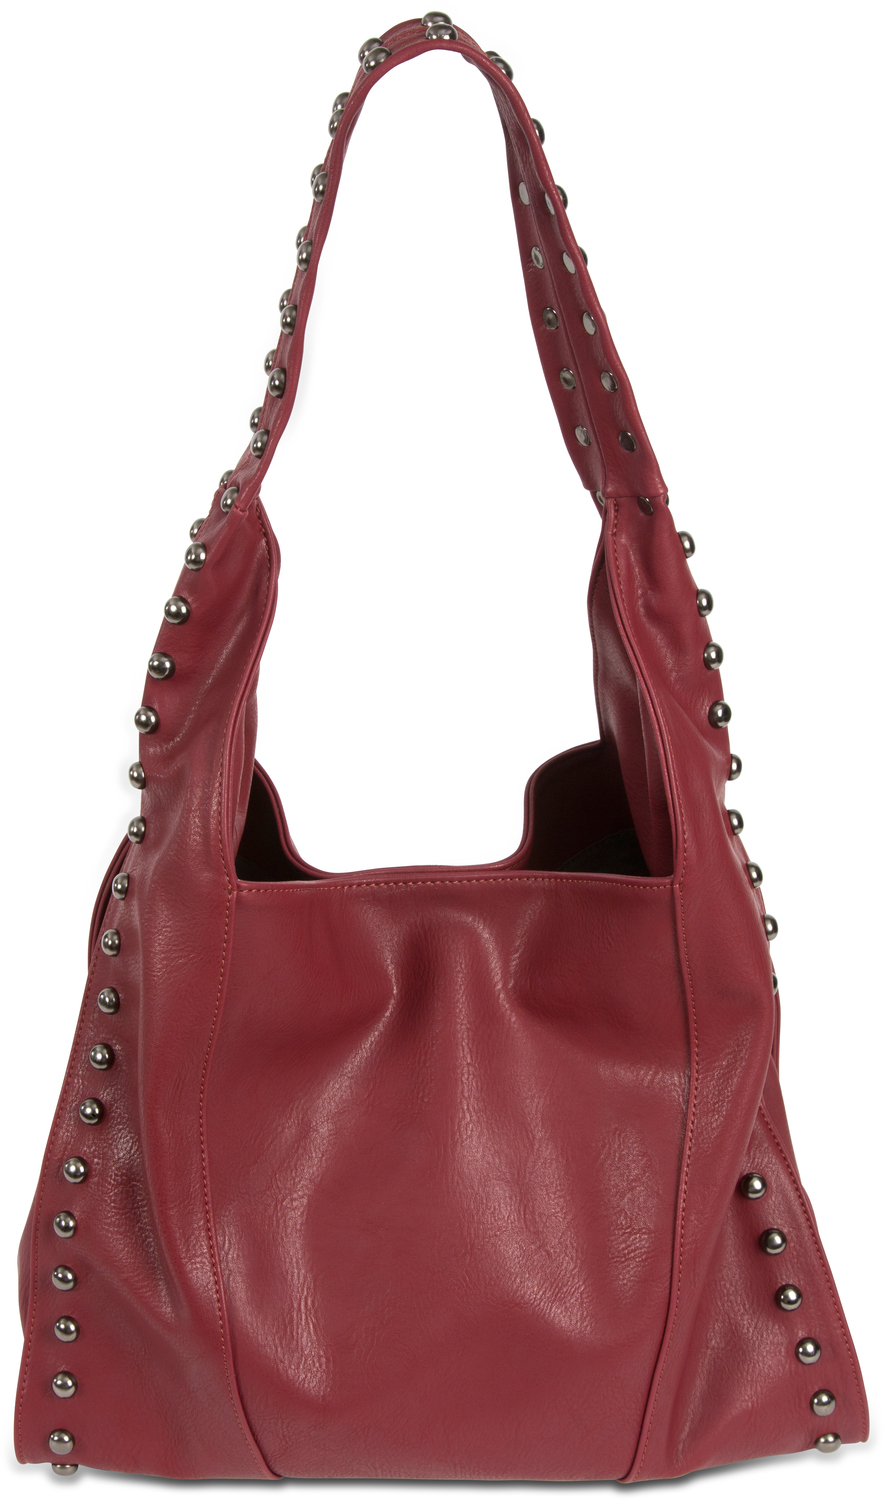 "Emma Bordeaux by H2Z Handbags - Emma Bordeaux - 12.5"" x 5"" x 14.5"" Handbag"